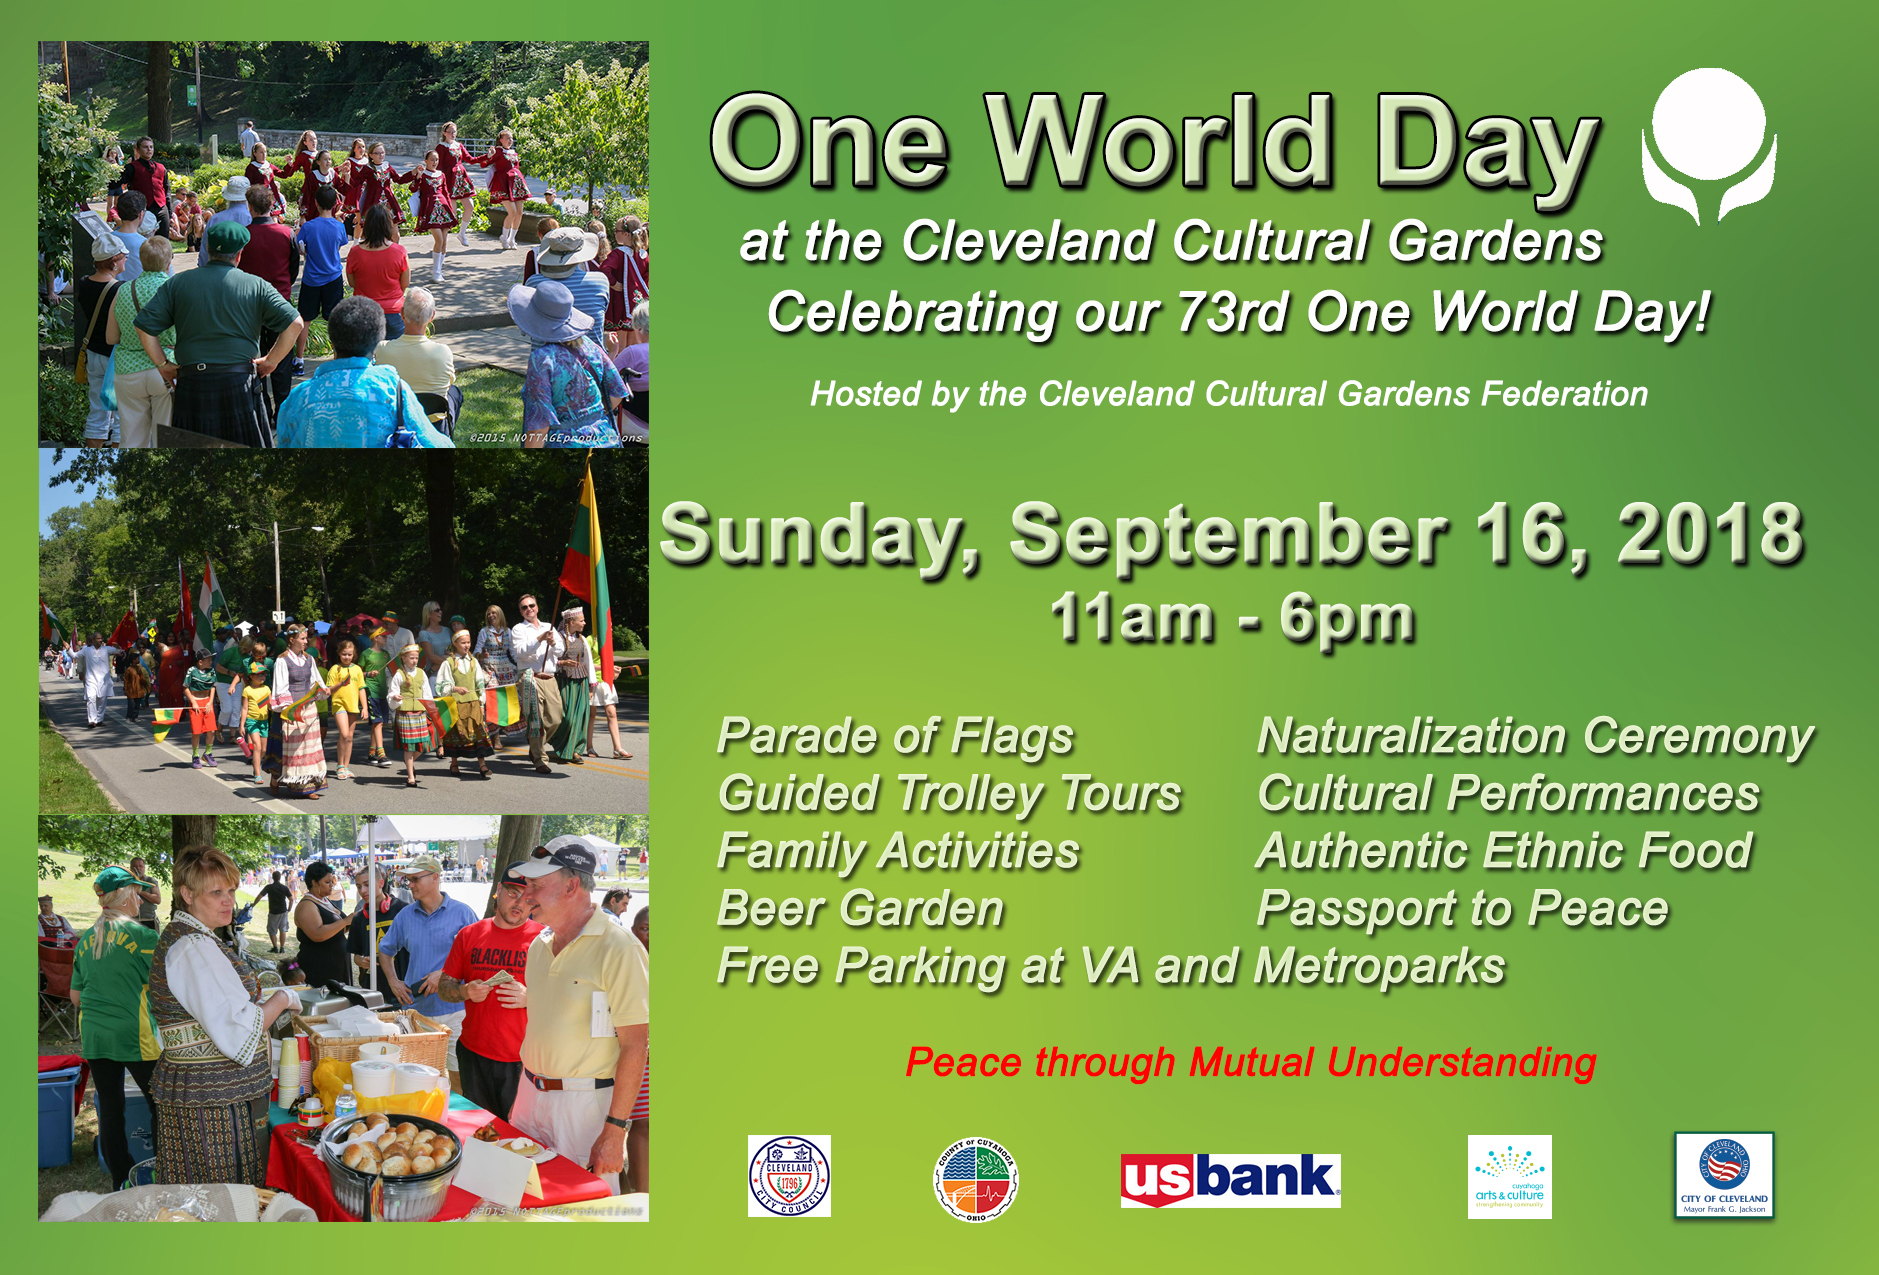 One World Day @ Cleveland Cultural Gardens